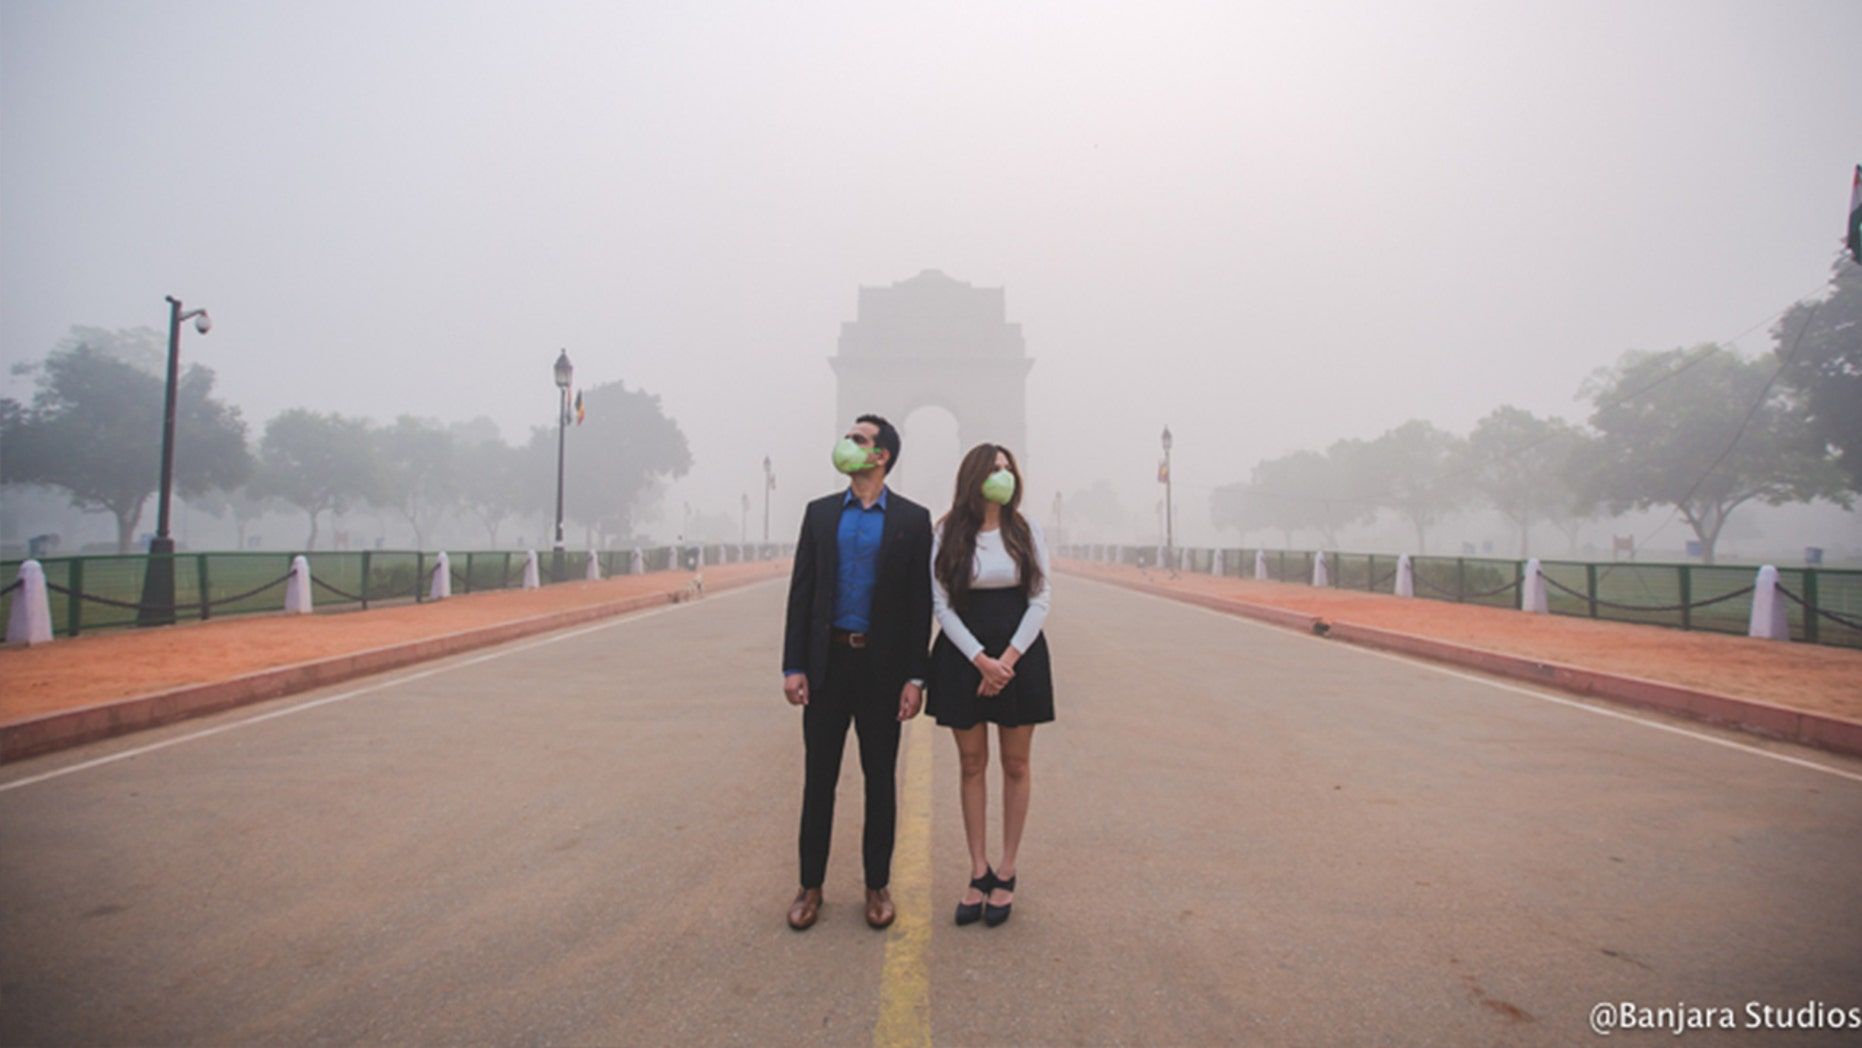 The real-life coupled agreed to a creative photographer's big idea.